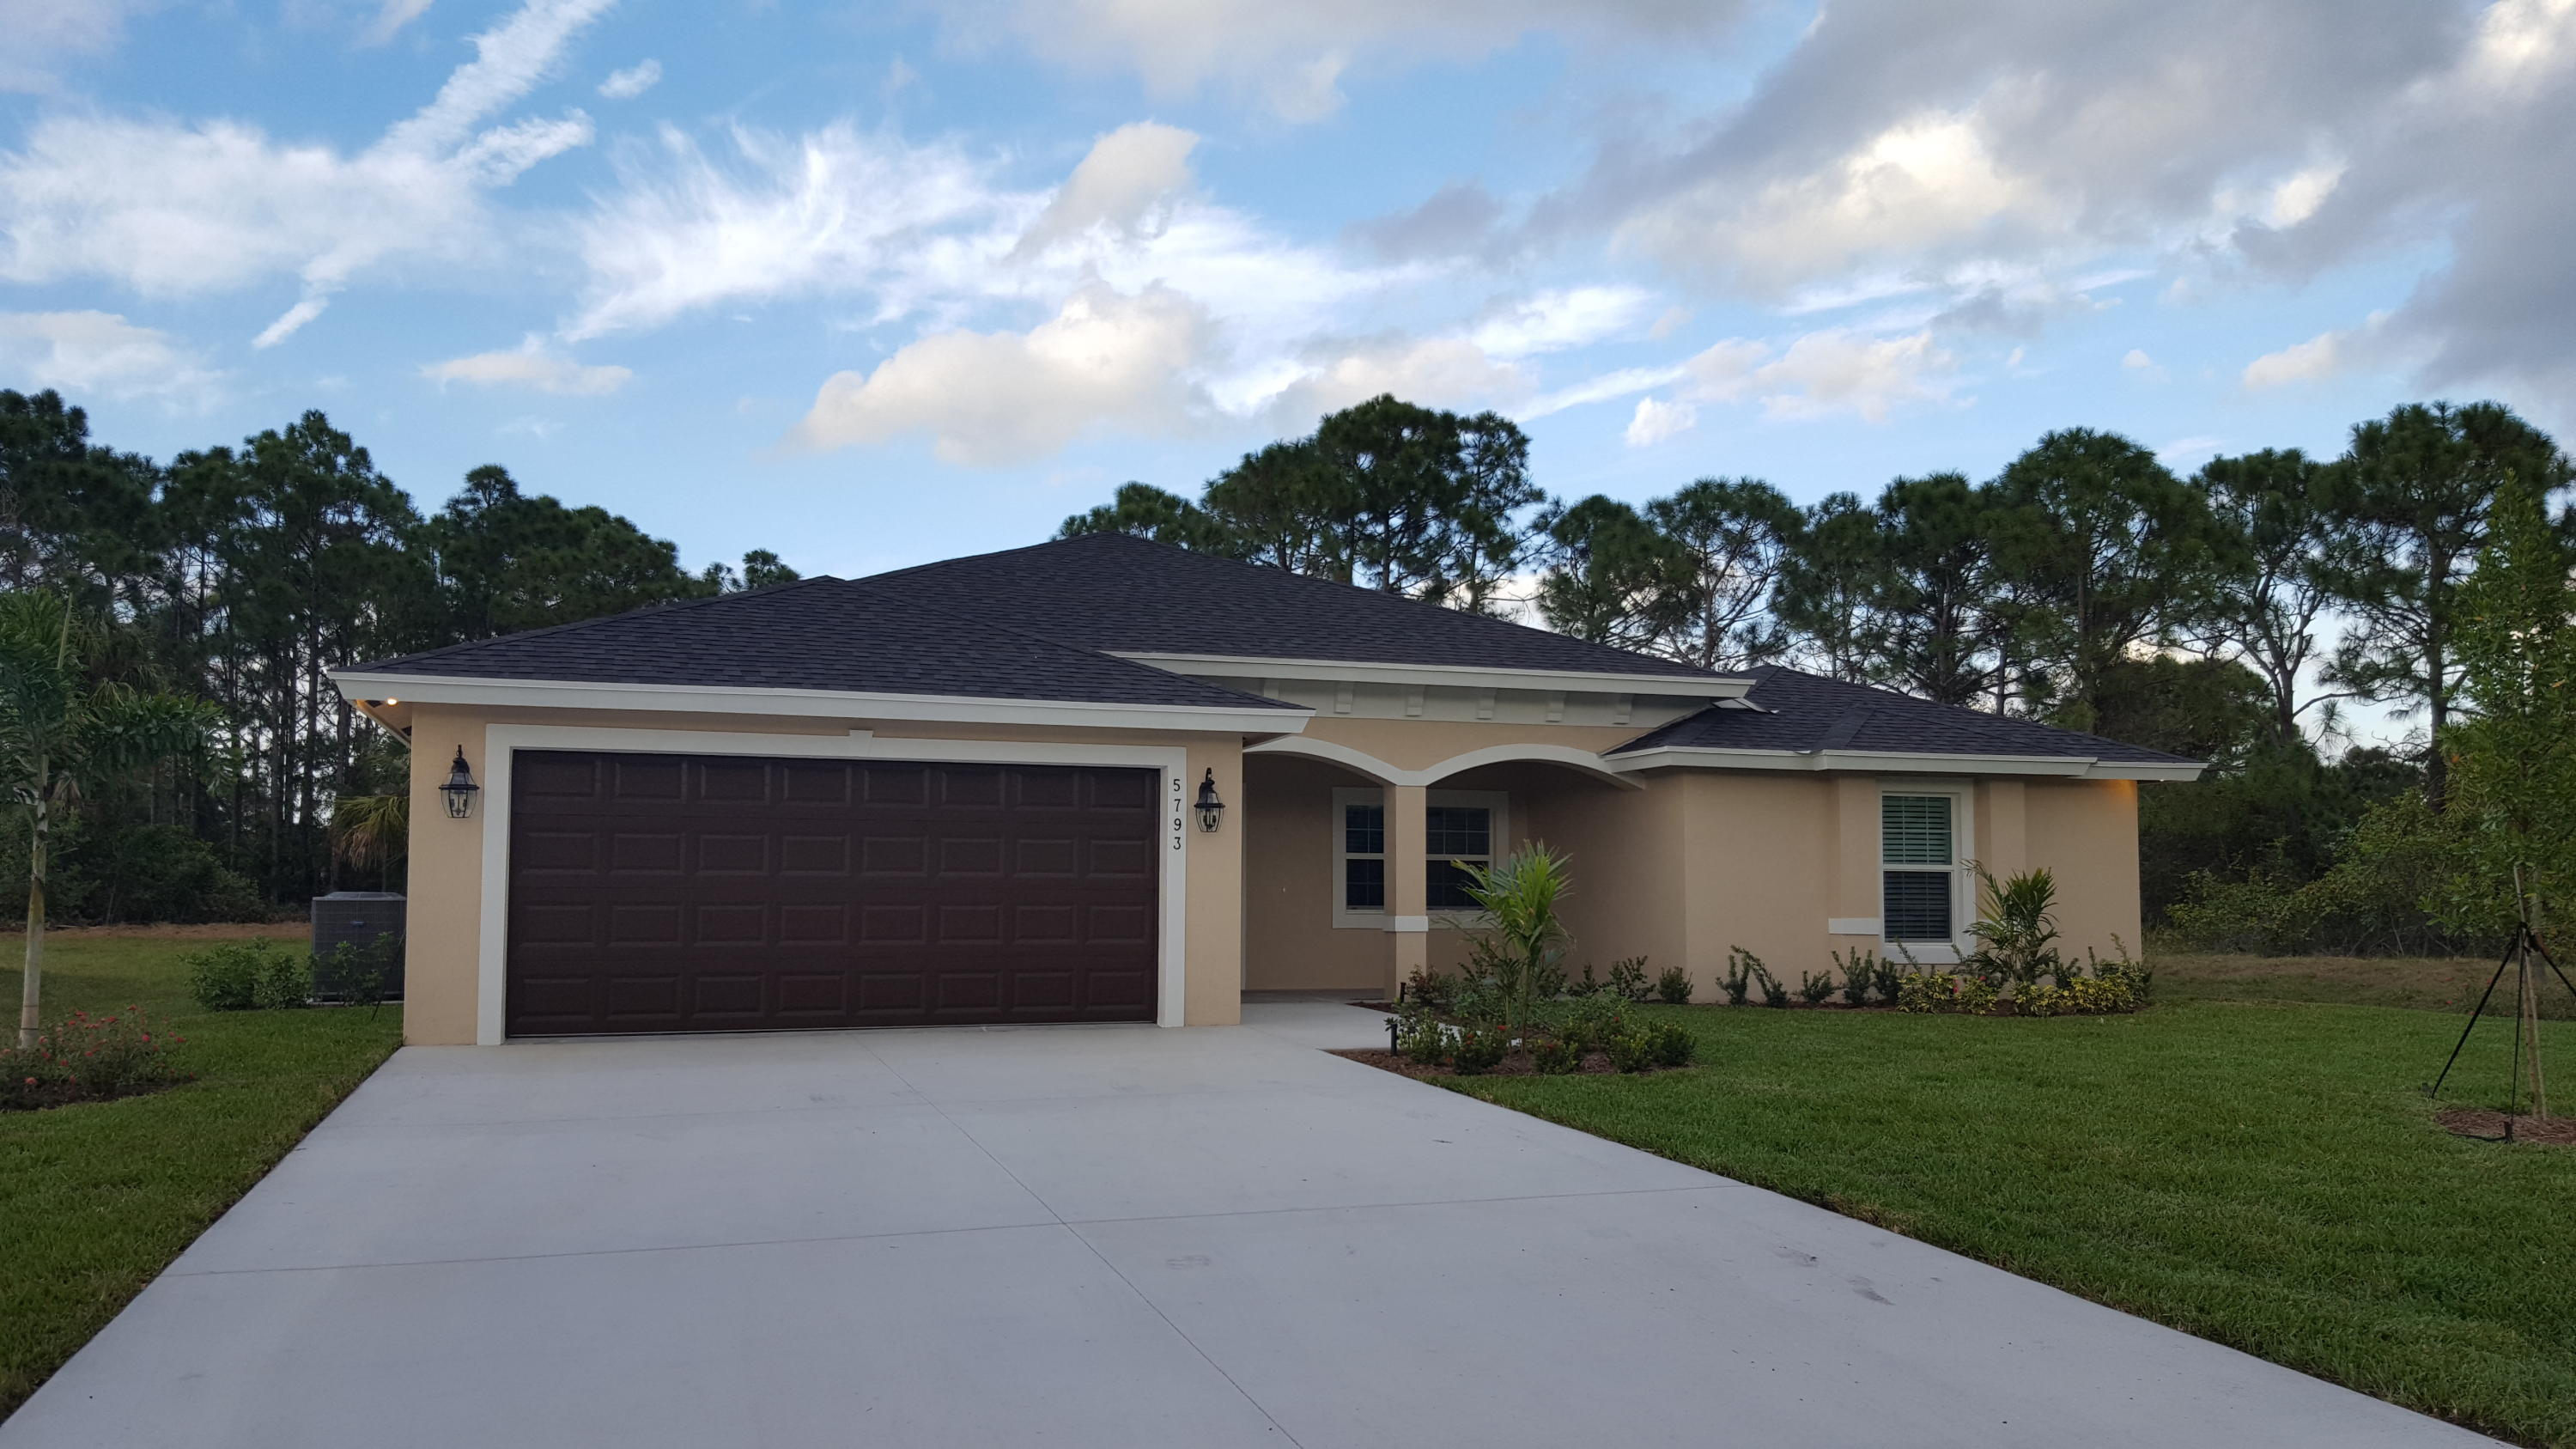 6135 NW Densaw Terrace, Port Saint Lucie, Florida